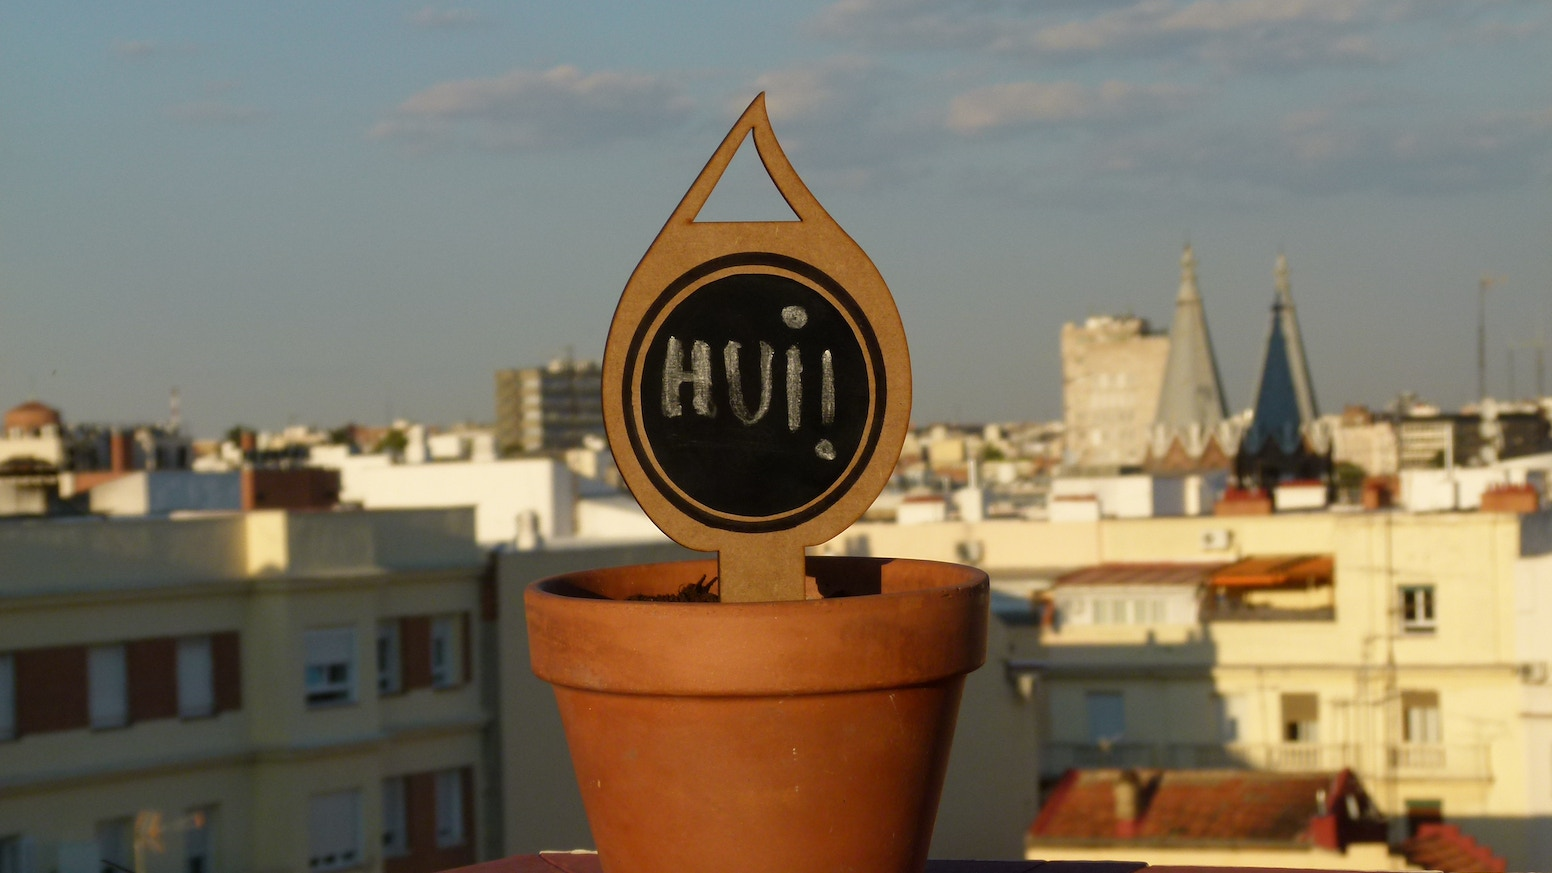 HUI! makes growing vegetables at home easier, more guided and less challenging!    HUI! te guía y ayuda a cultivar vegetales en casa.